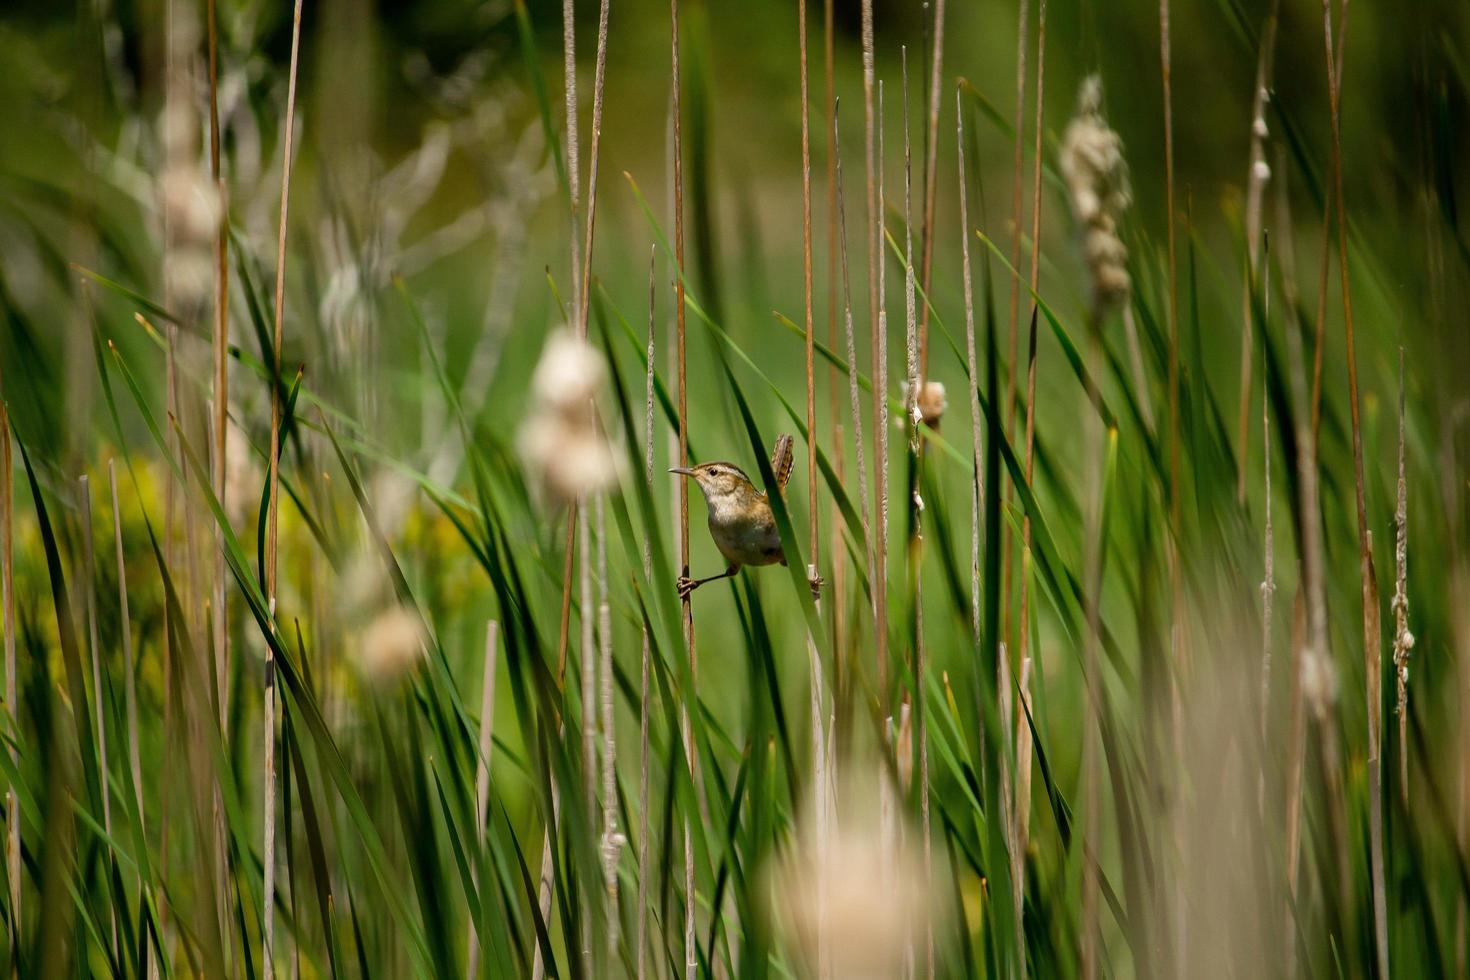 Bird perched on plants photo